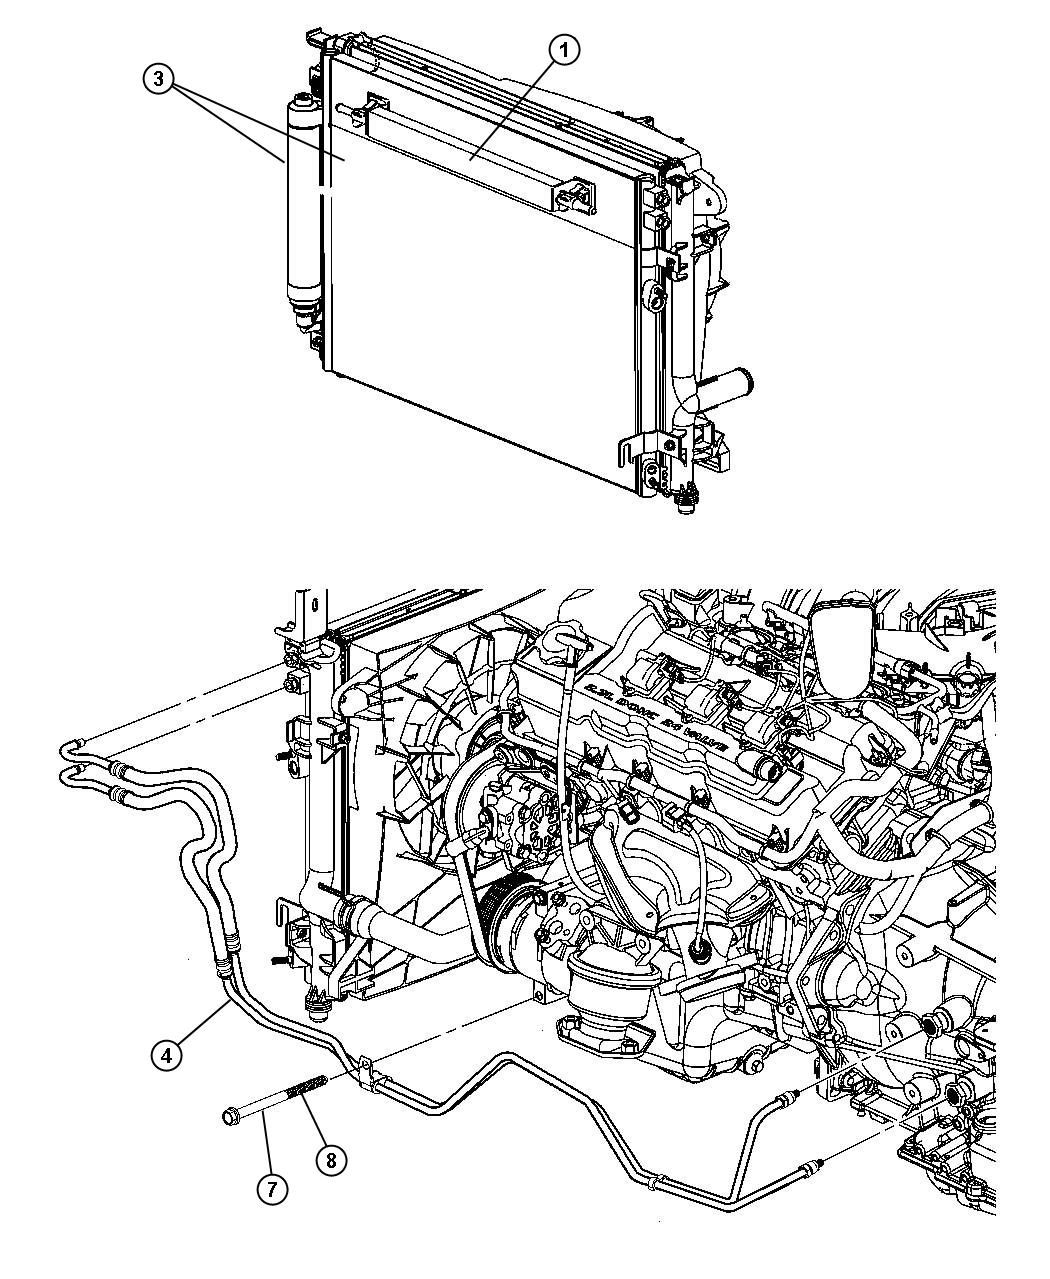 dodge magnum 5 7 engine diagram